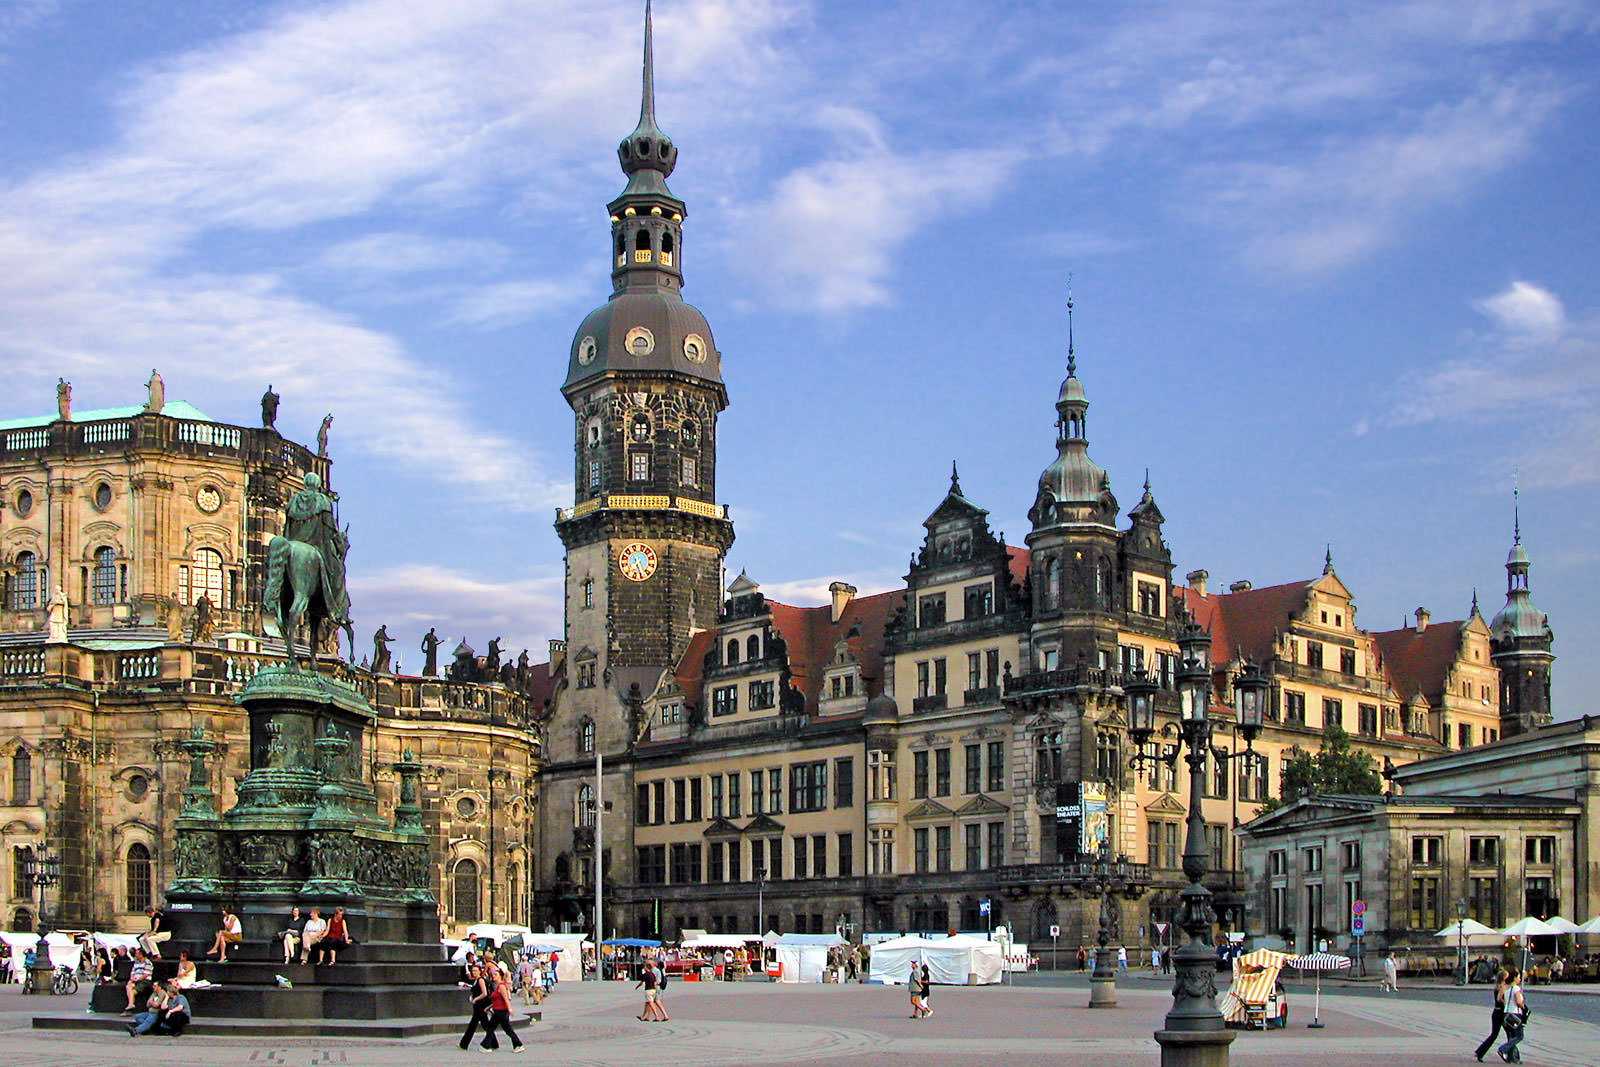 10 Best Things to Do in Dresden - What is Dresden Most Famous For?